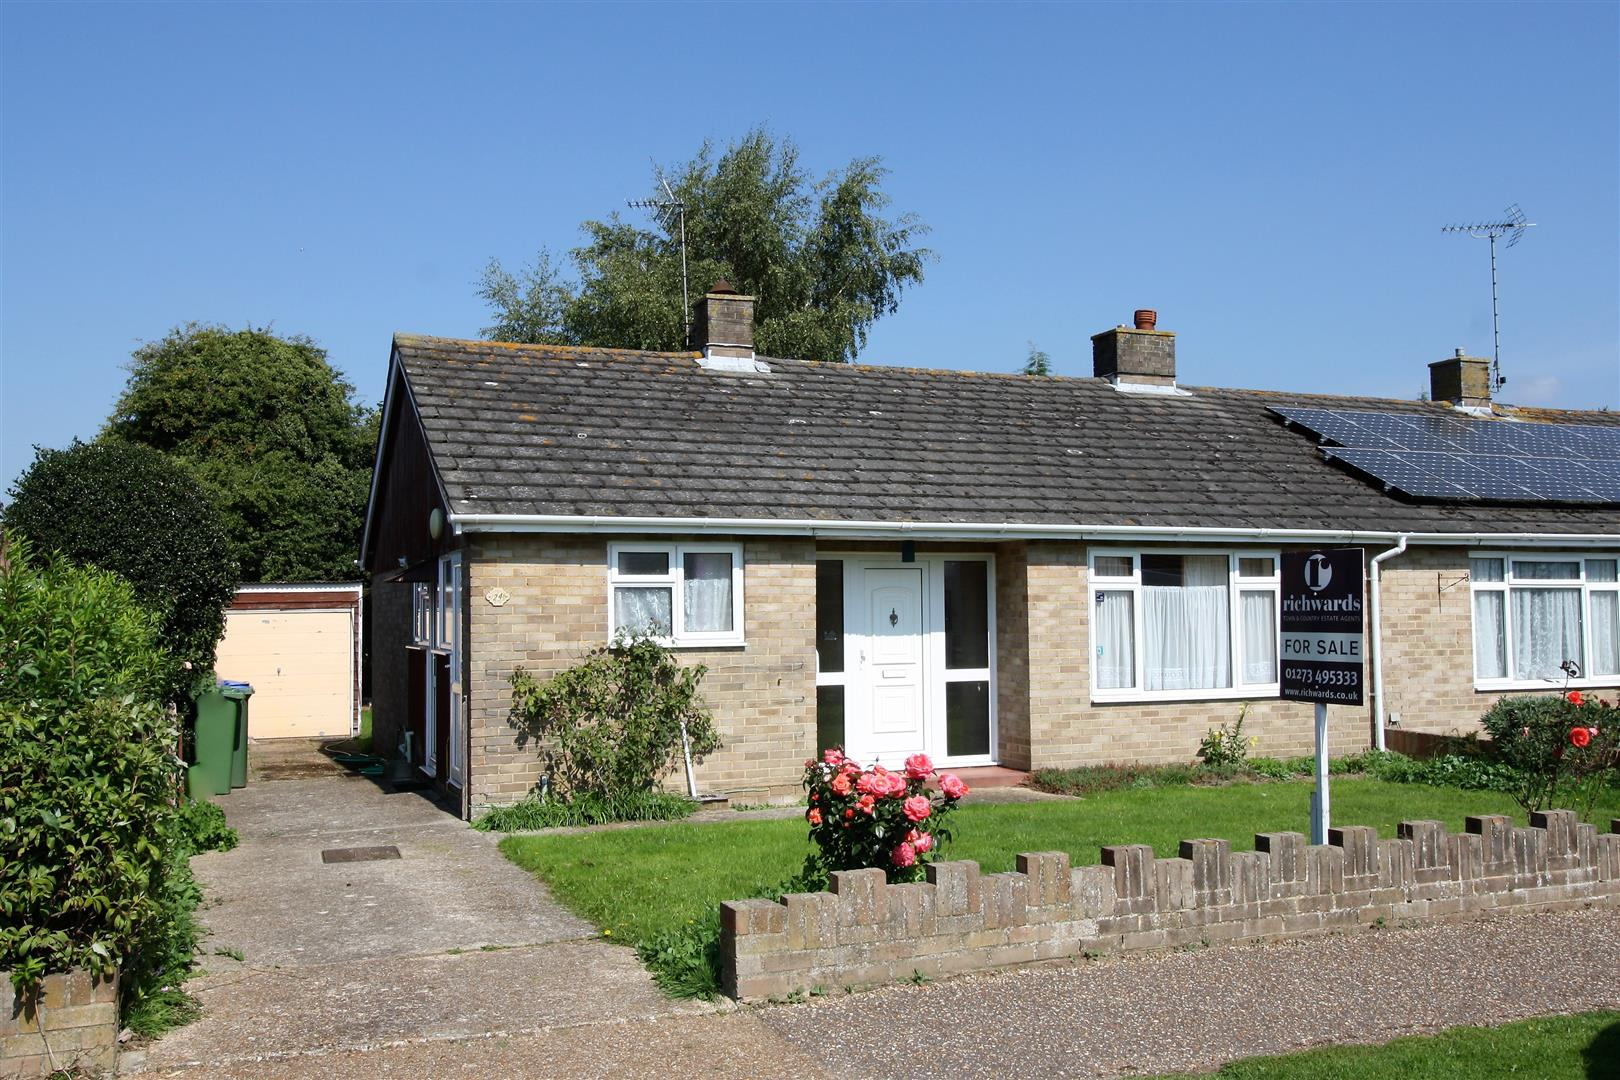 3 bedroom semi detached bungalow for sale